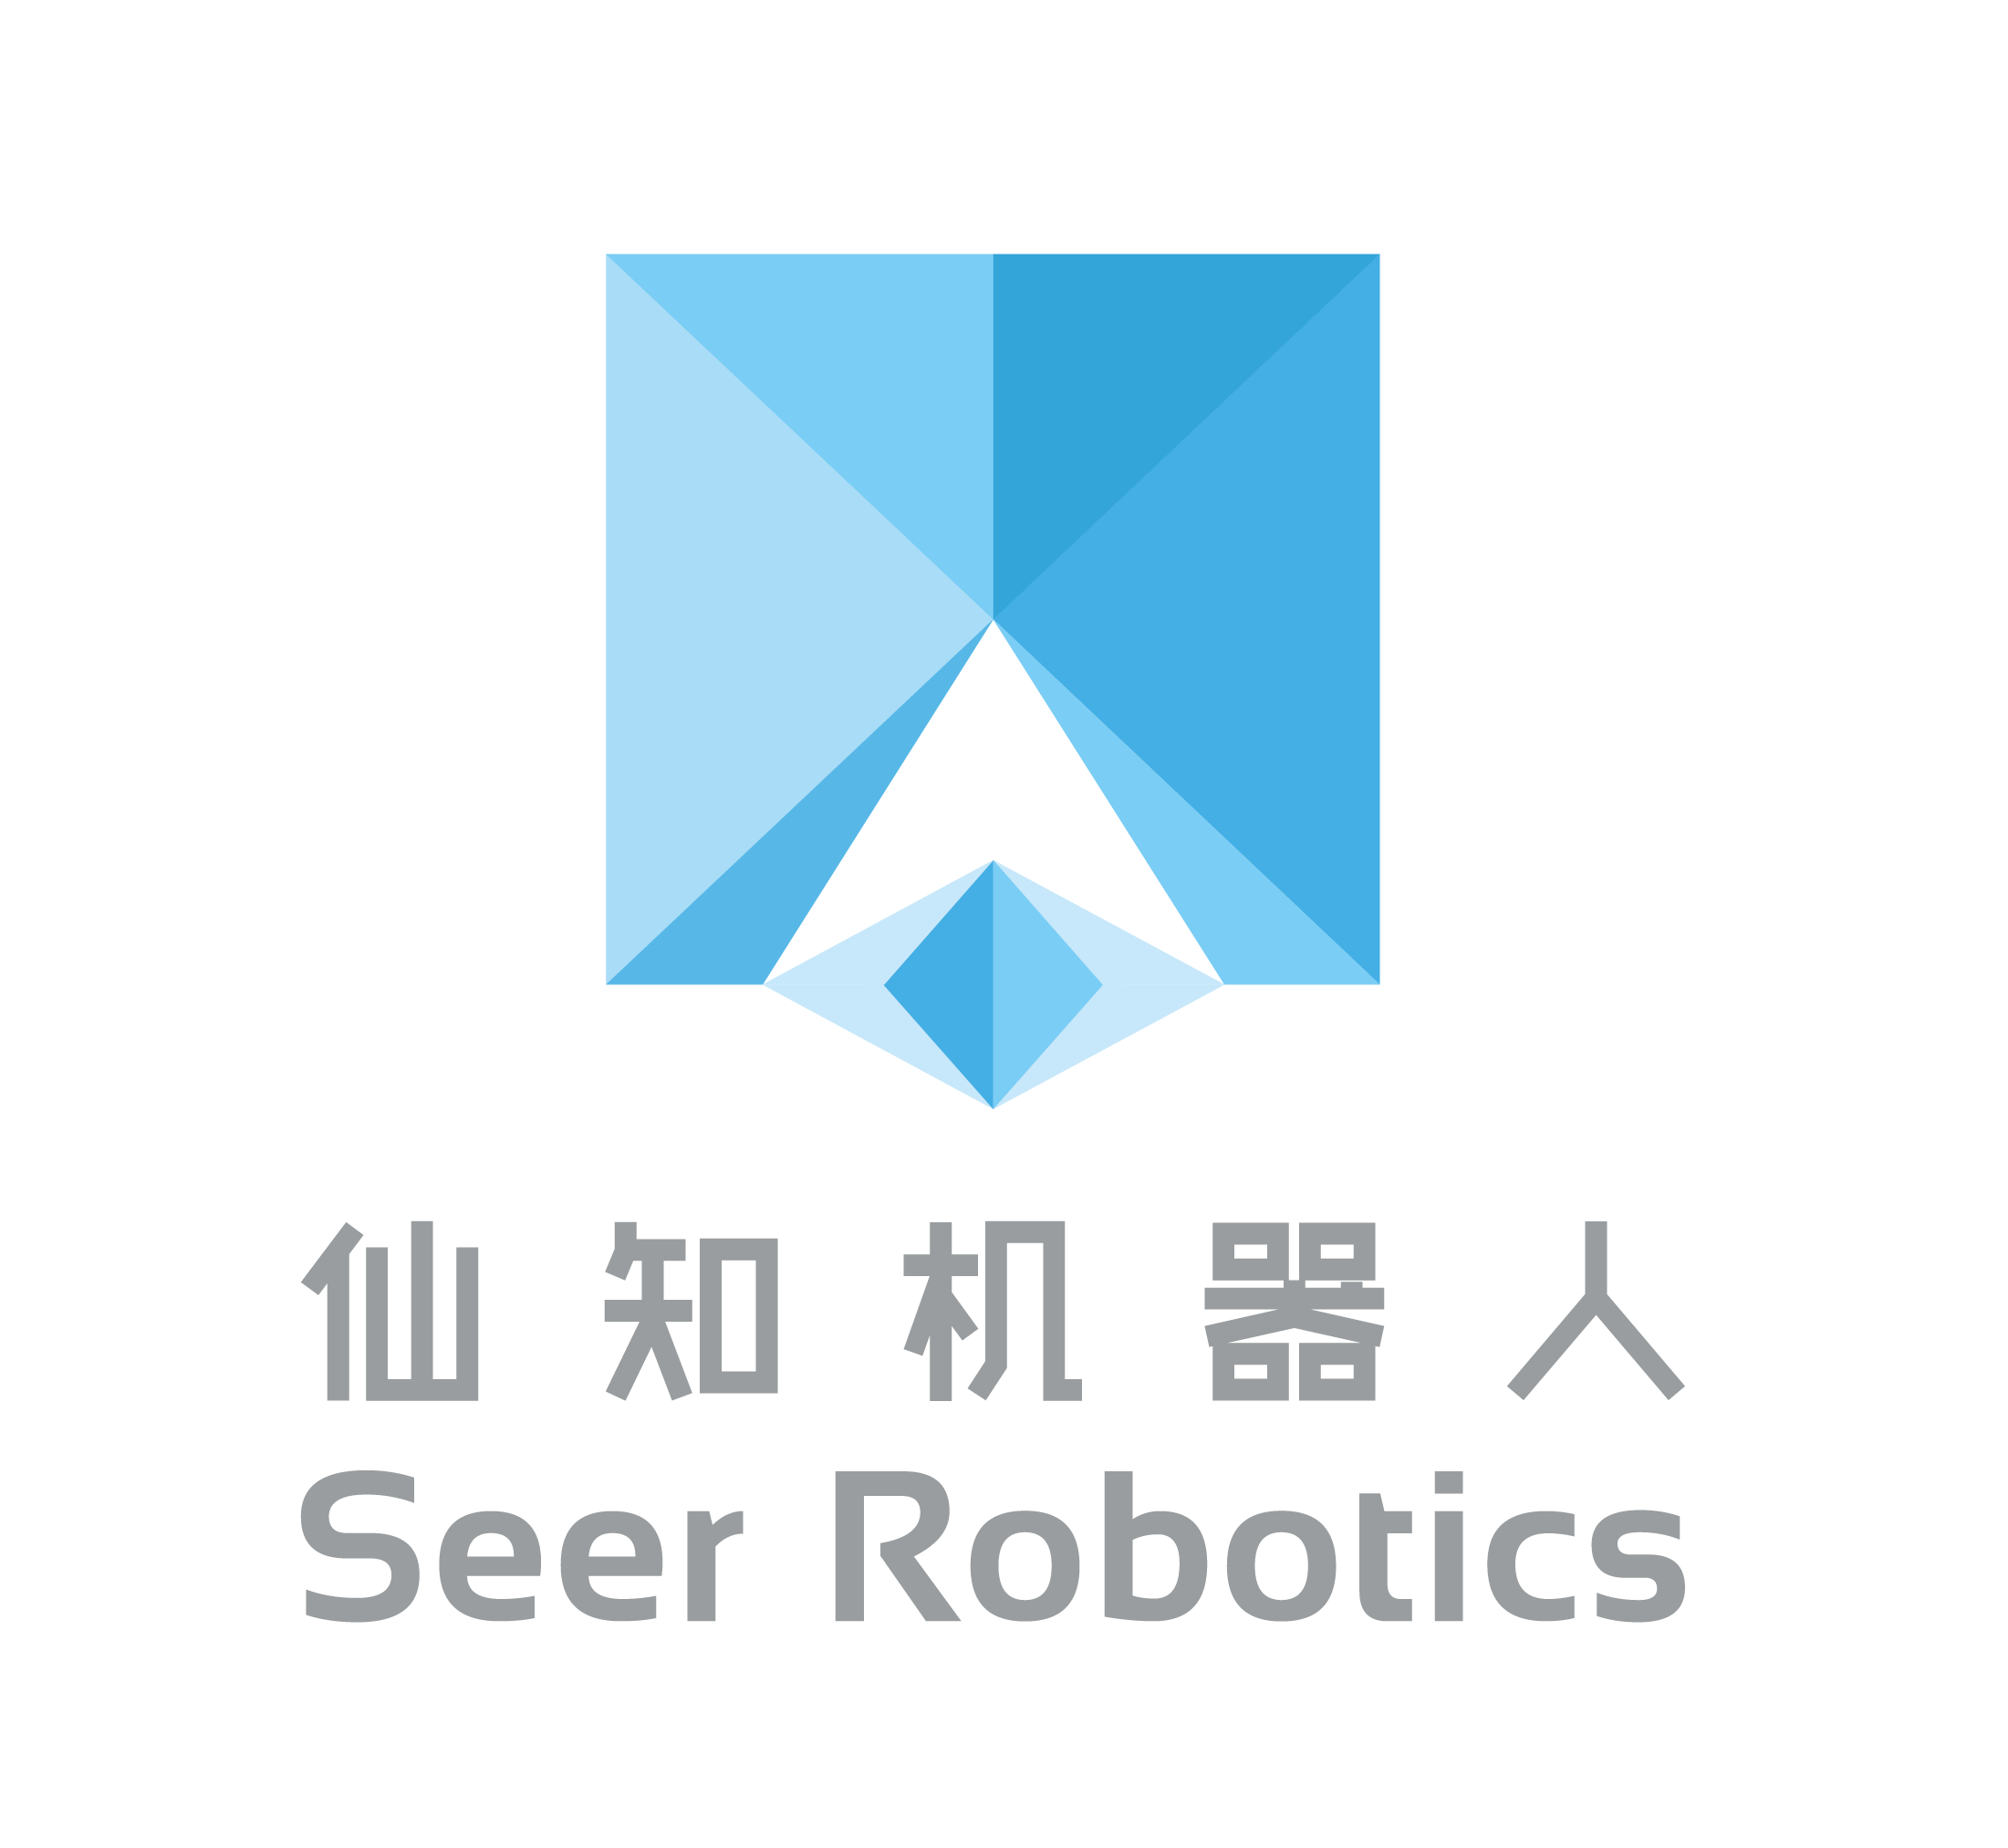 Shanghai Seer Robotics Technology Co., Ltd.